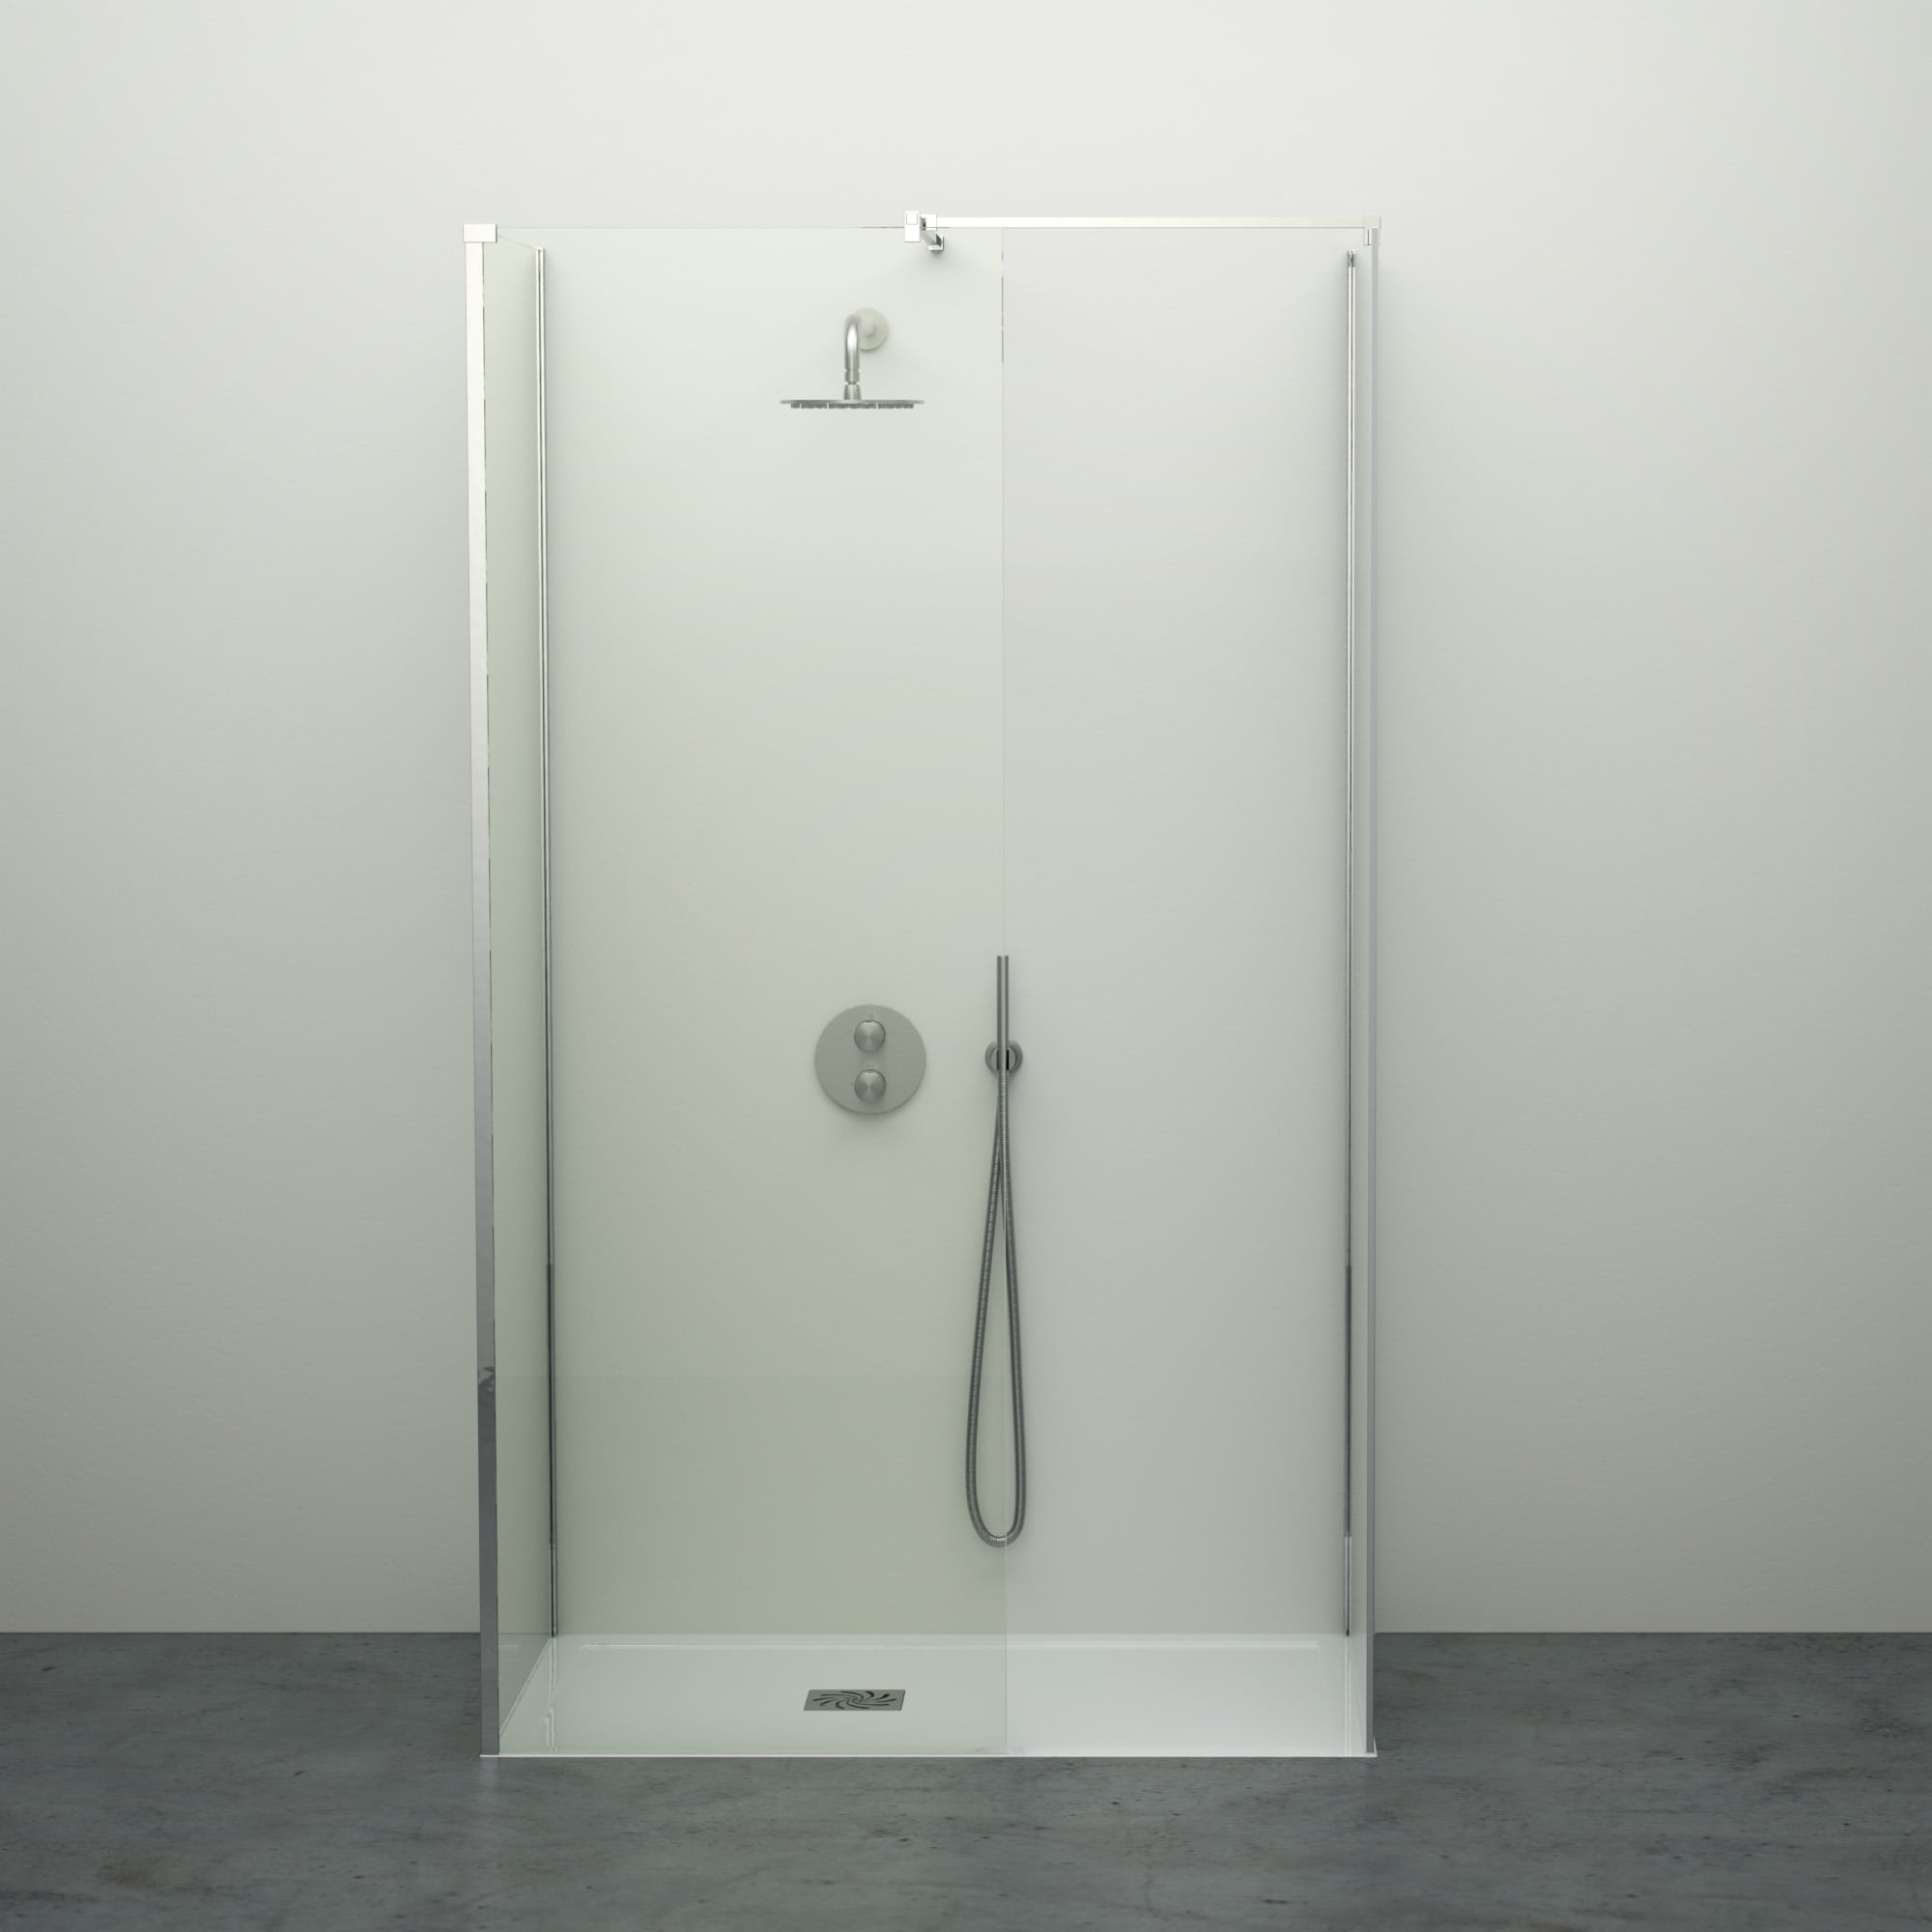 Lusso stone modern complete walk in shower enclosure kit d all sizes